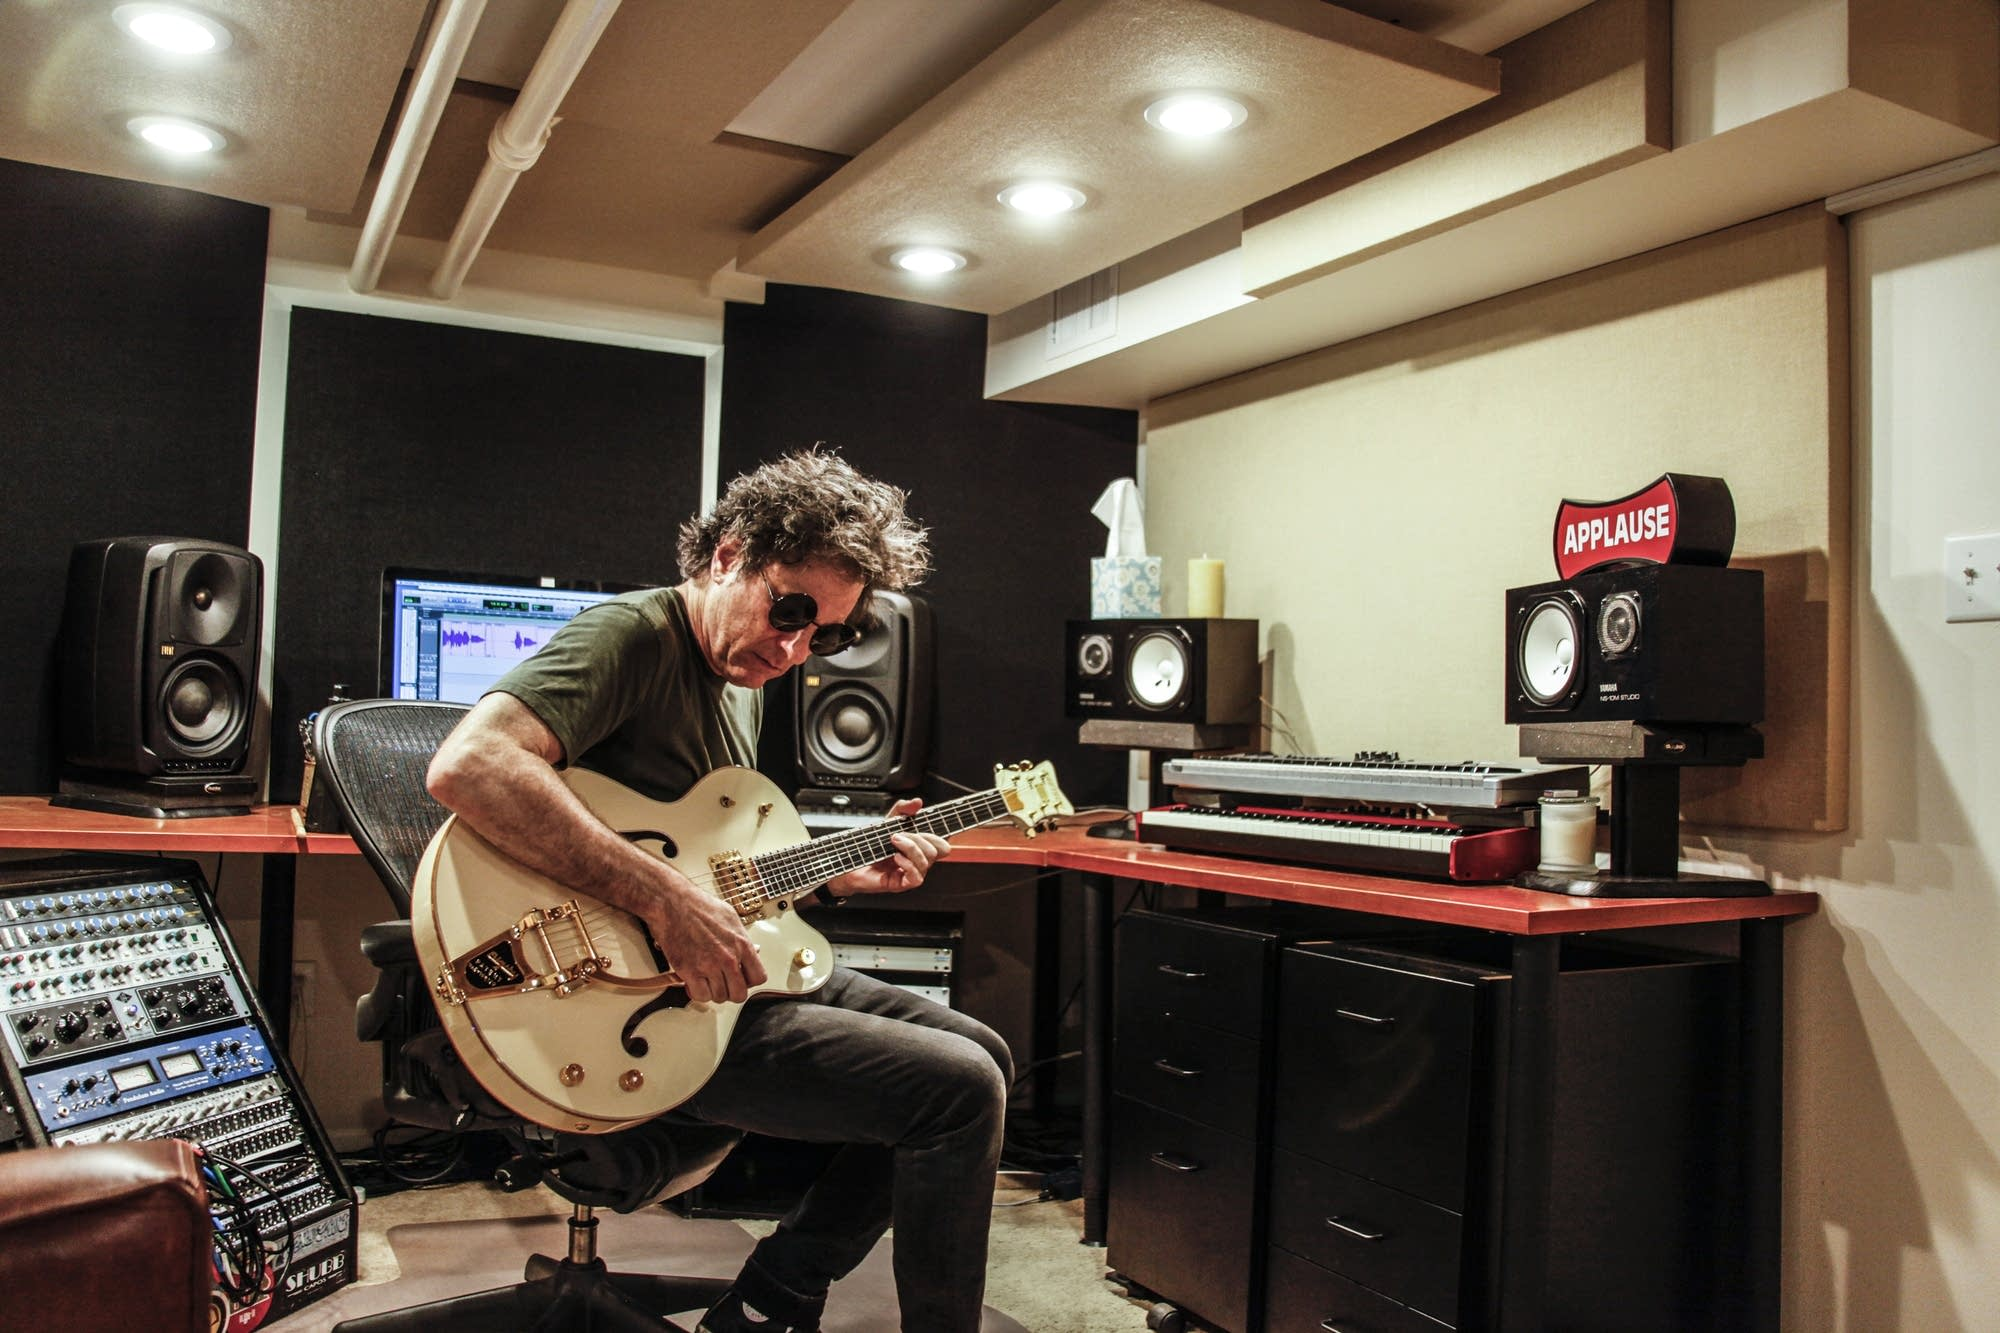 Kevin Bowe's basement holds a private studio for music production.